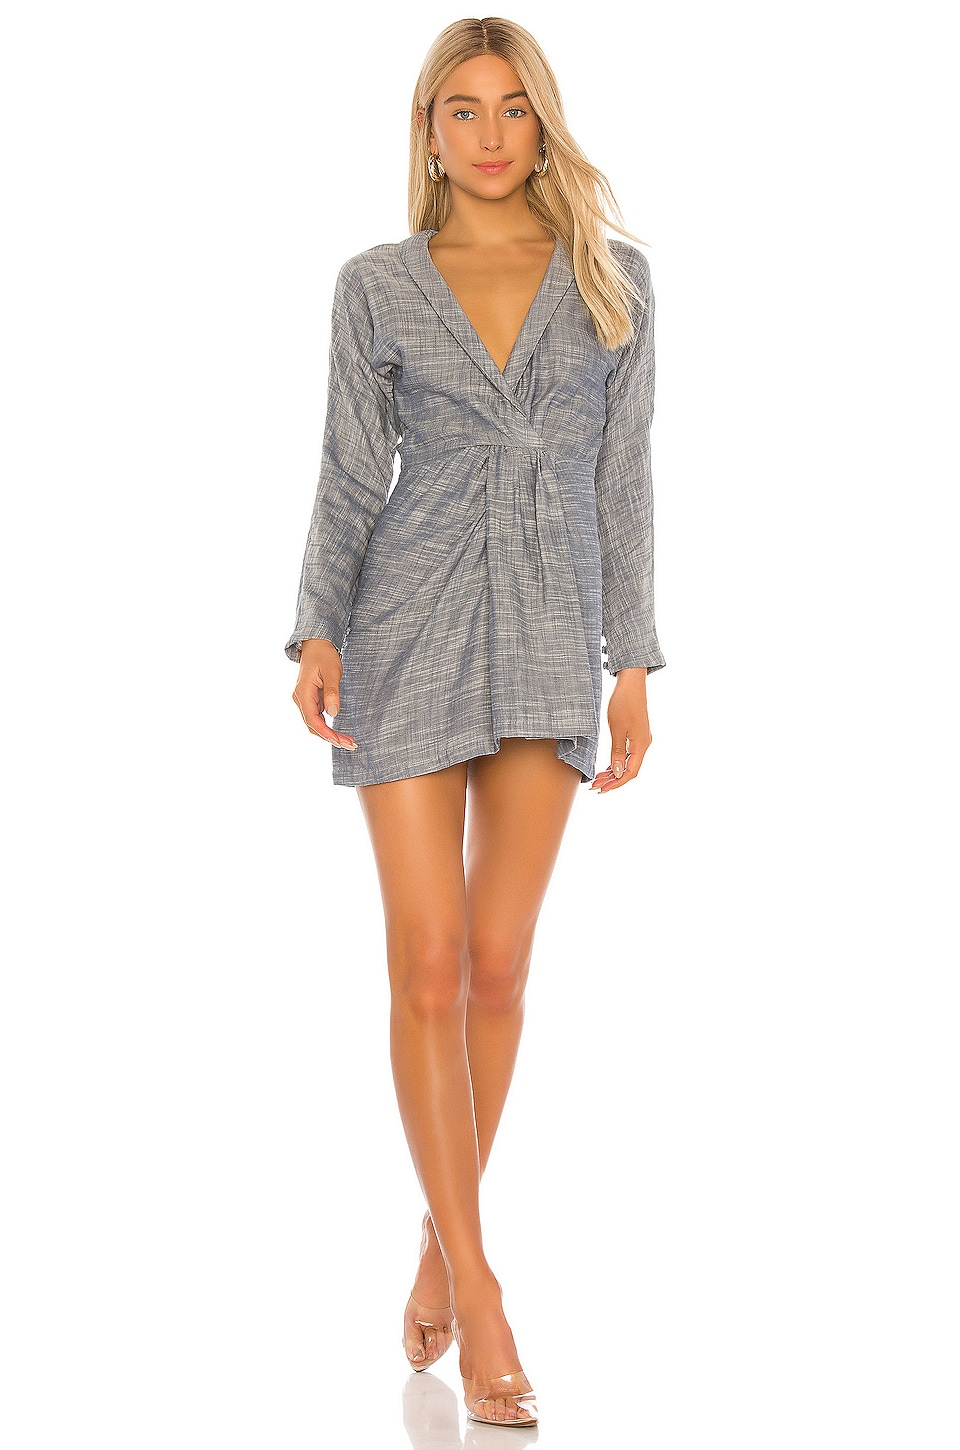 L'Academie The Acacia Mini Dress in Dusty Blue